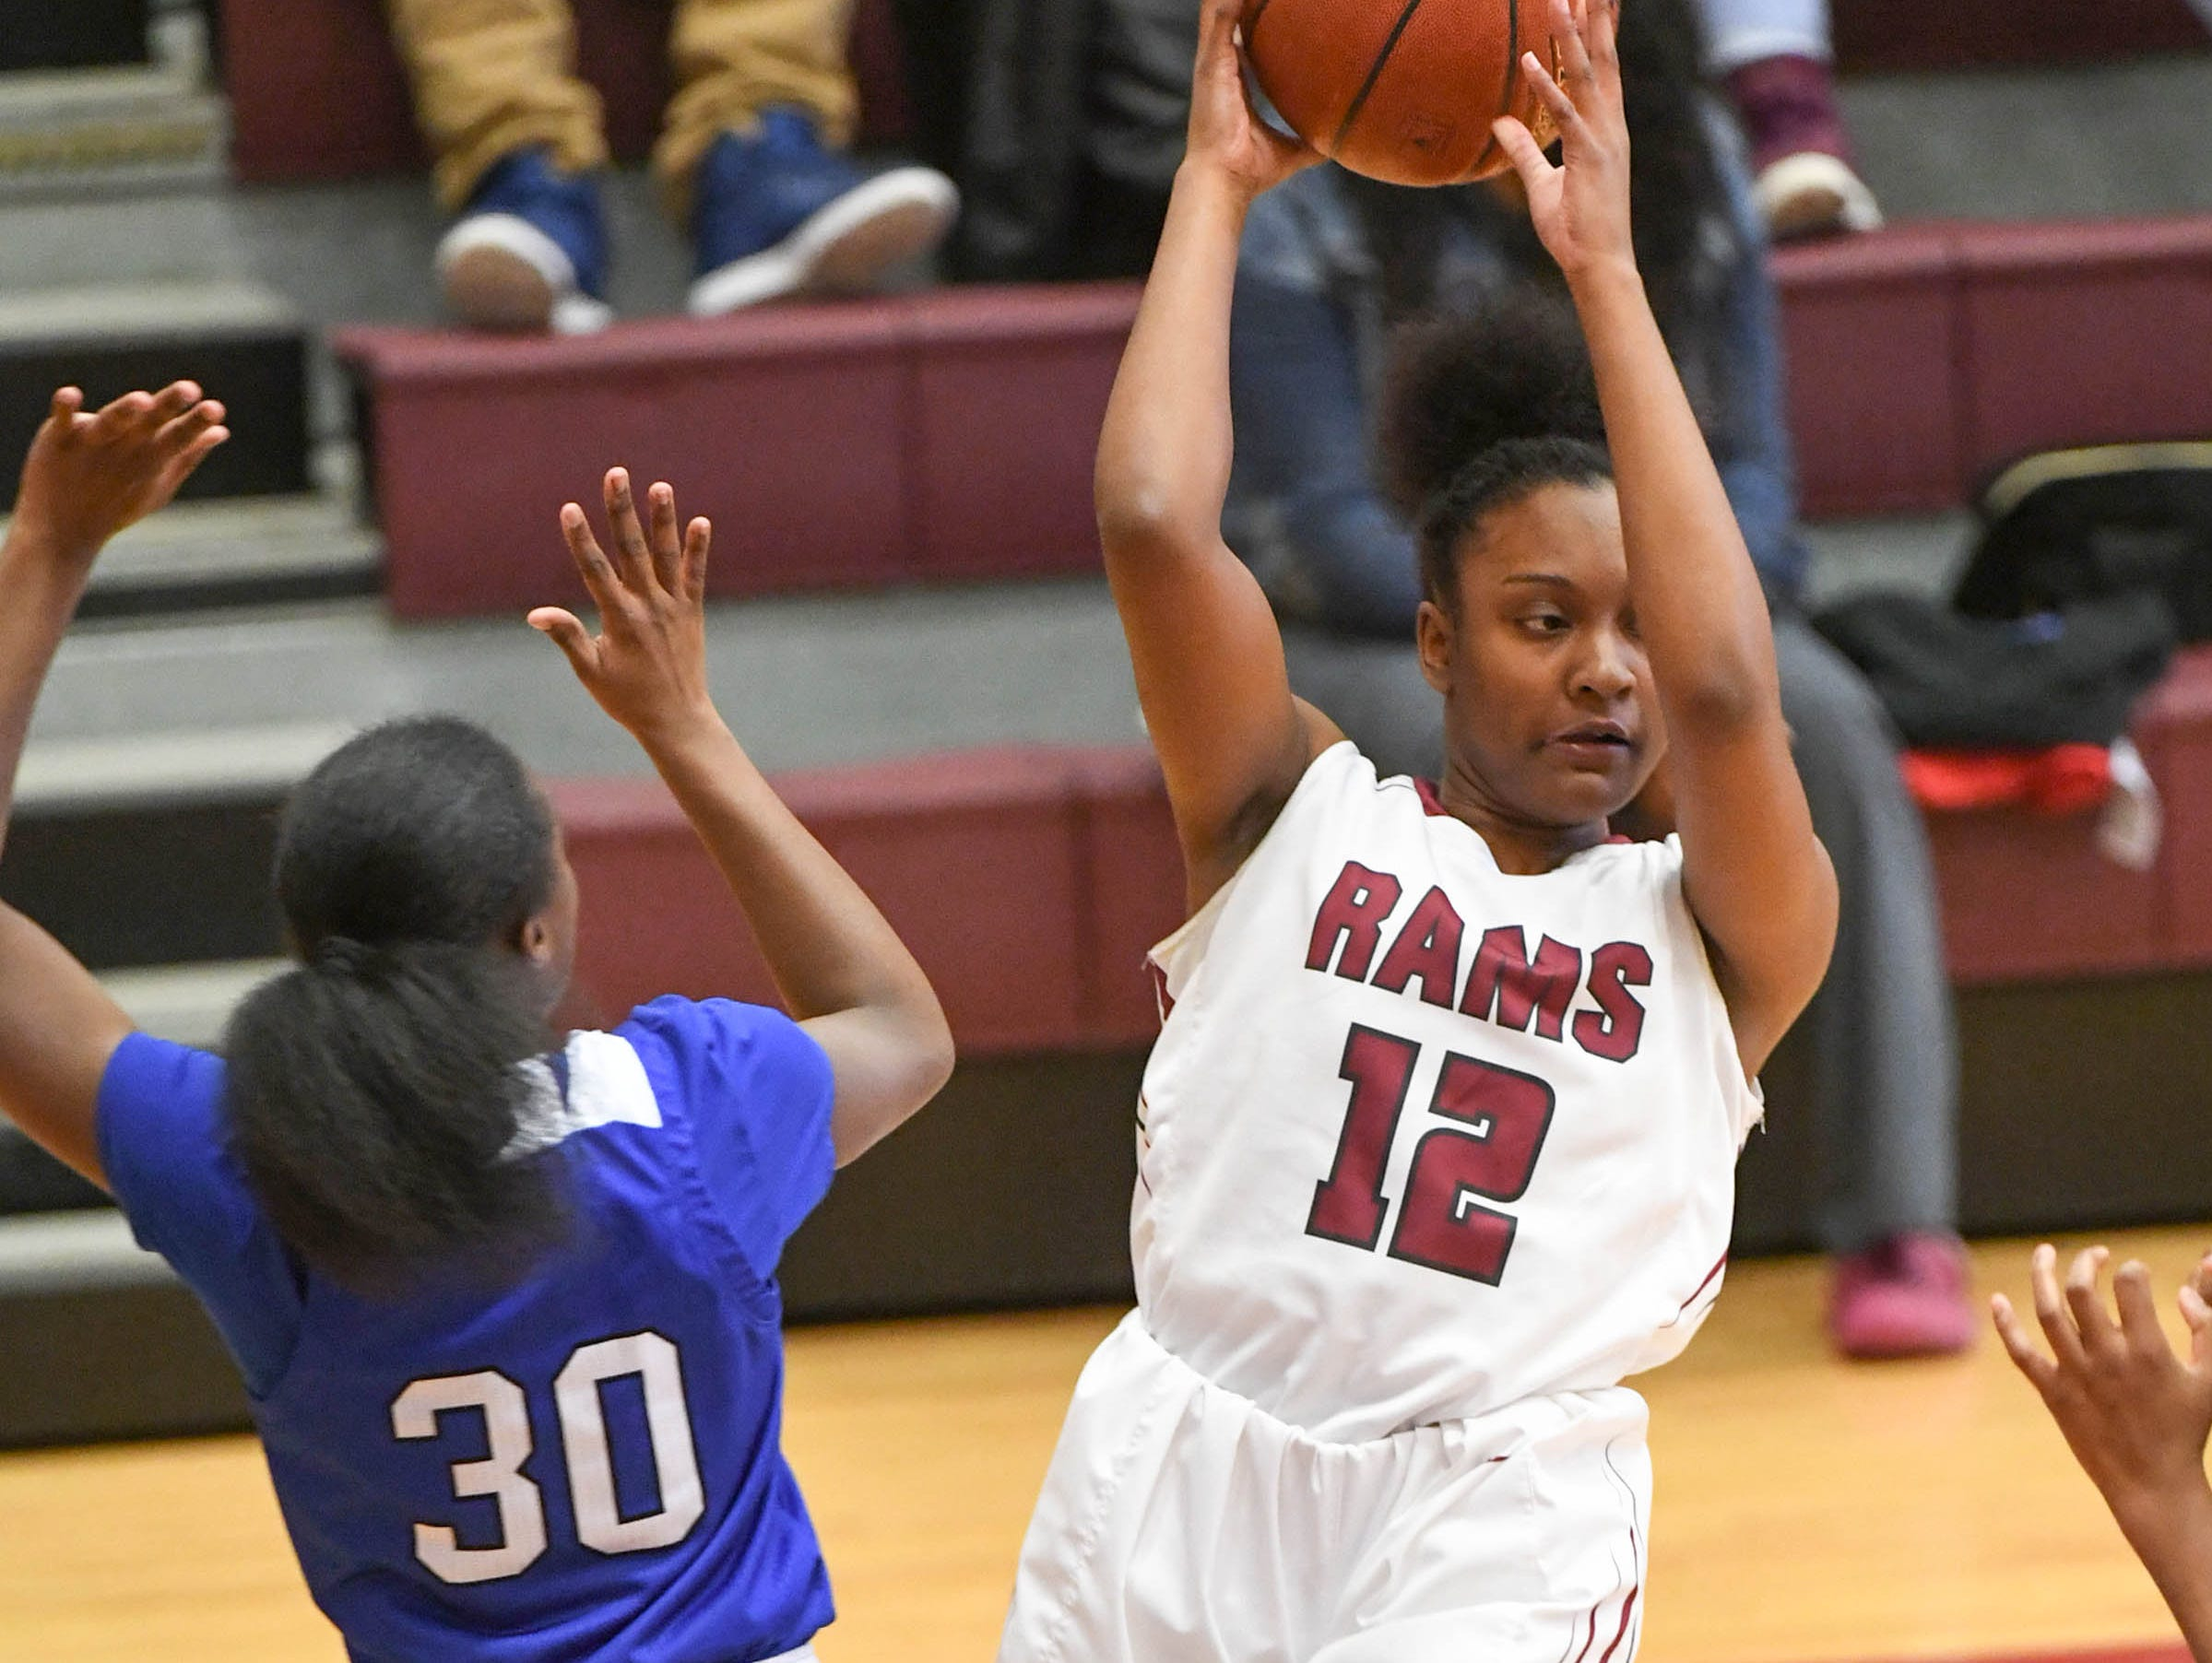 Westside freshman Branya Pruitt(12) rebounds near Woodmont junior JaRae Smith(30) during the first quarter at Westside High School in Anderson on Tuesday.